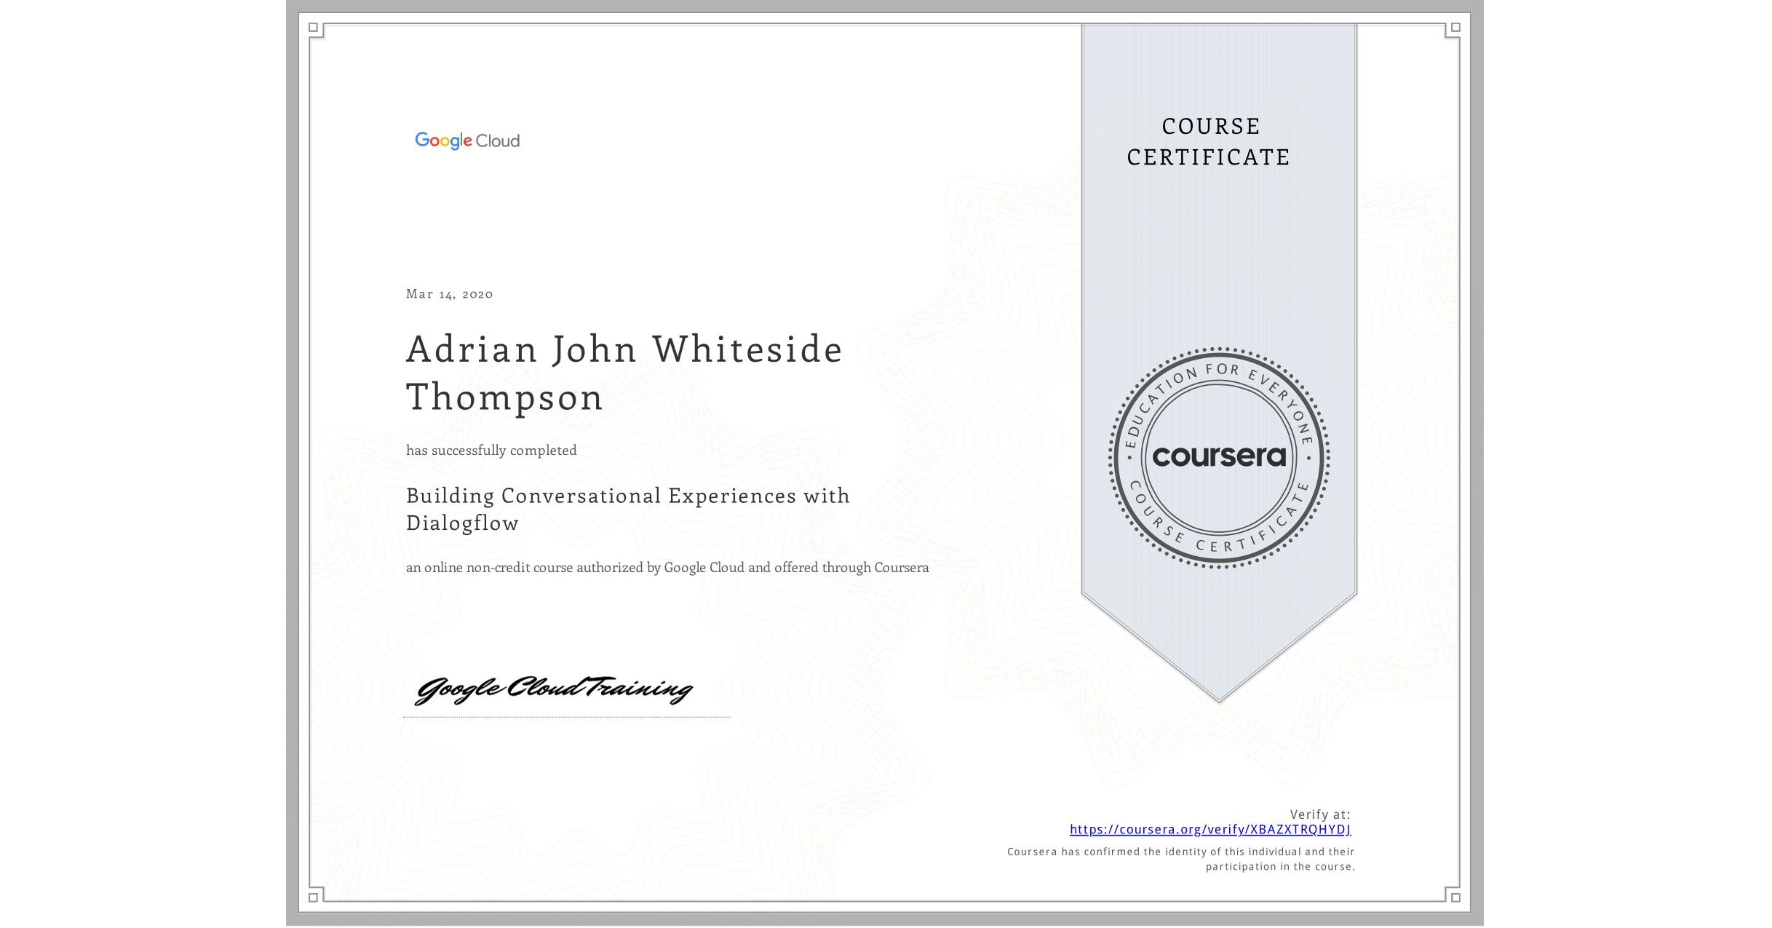 View certificate for Adrian John Whiteside Thompson, Building Conversational Experiences with Dialogflow, an online non-credit course authorized by Google Cloud and offered through Coursera